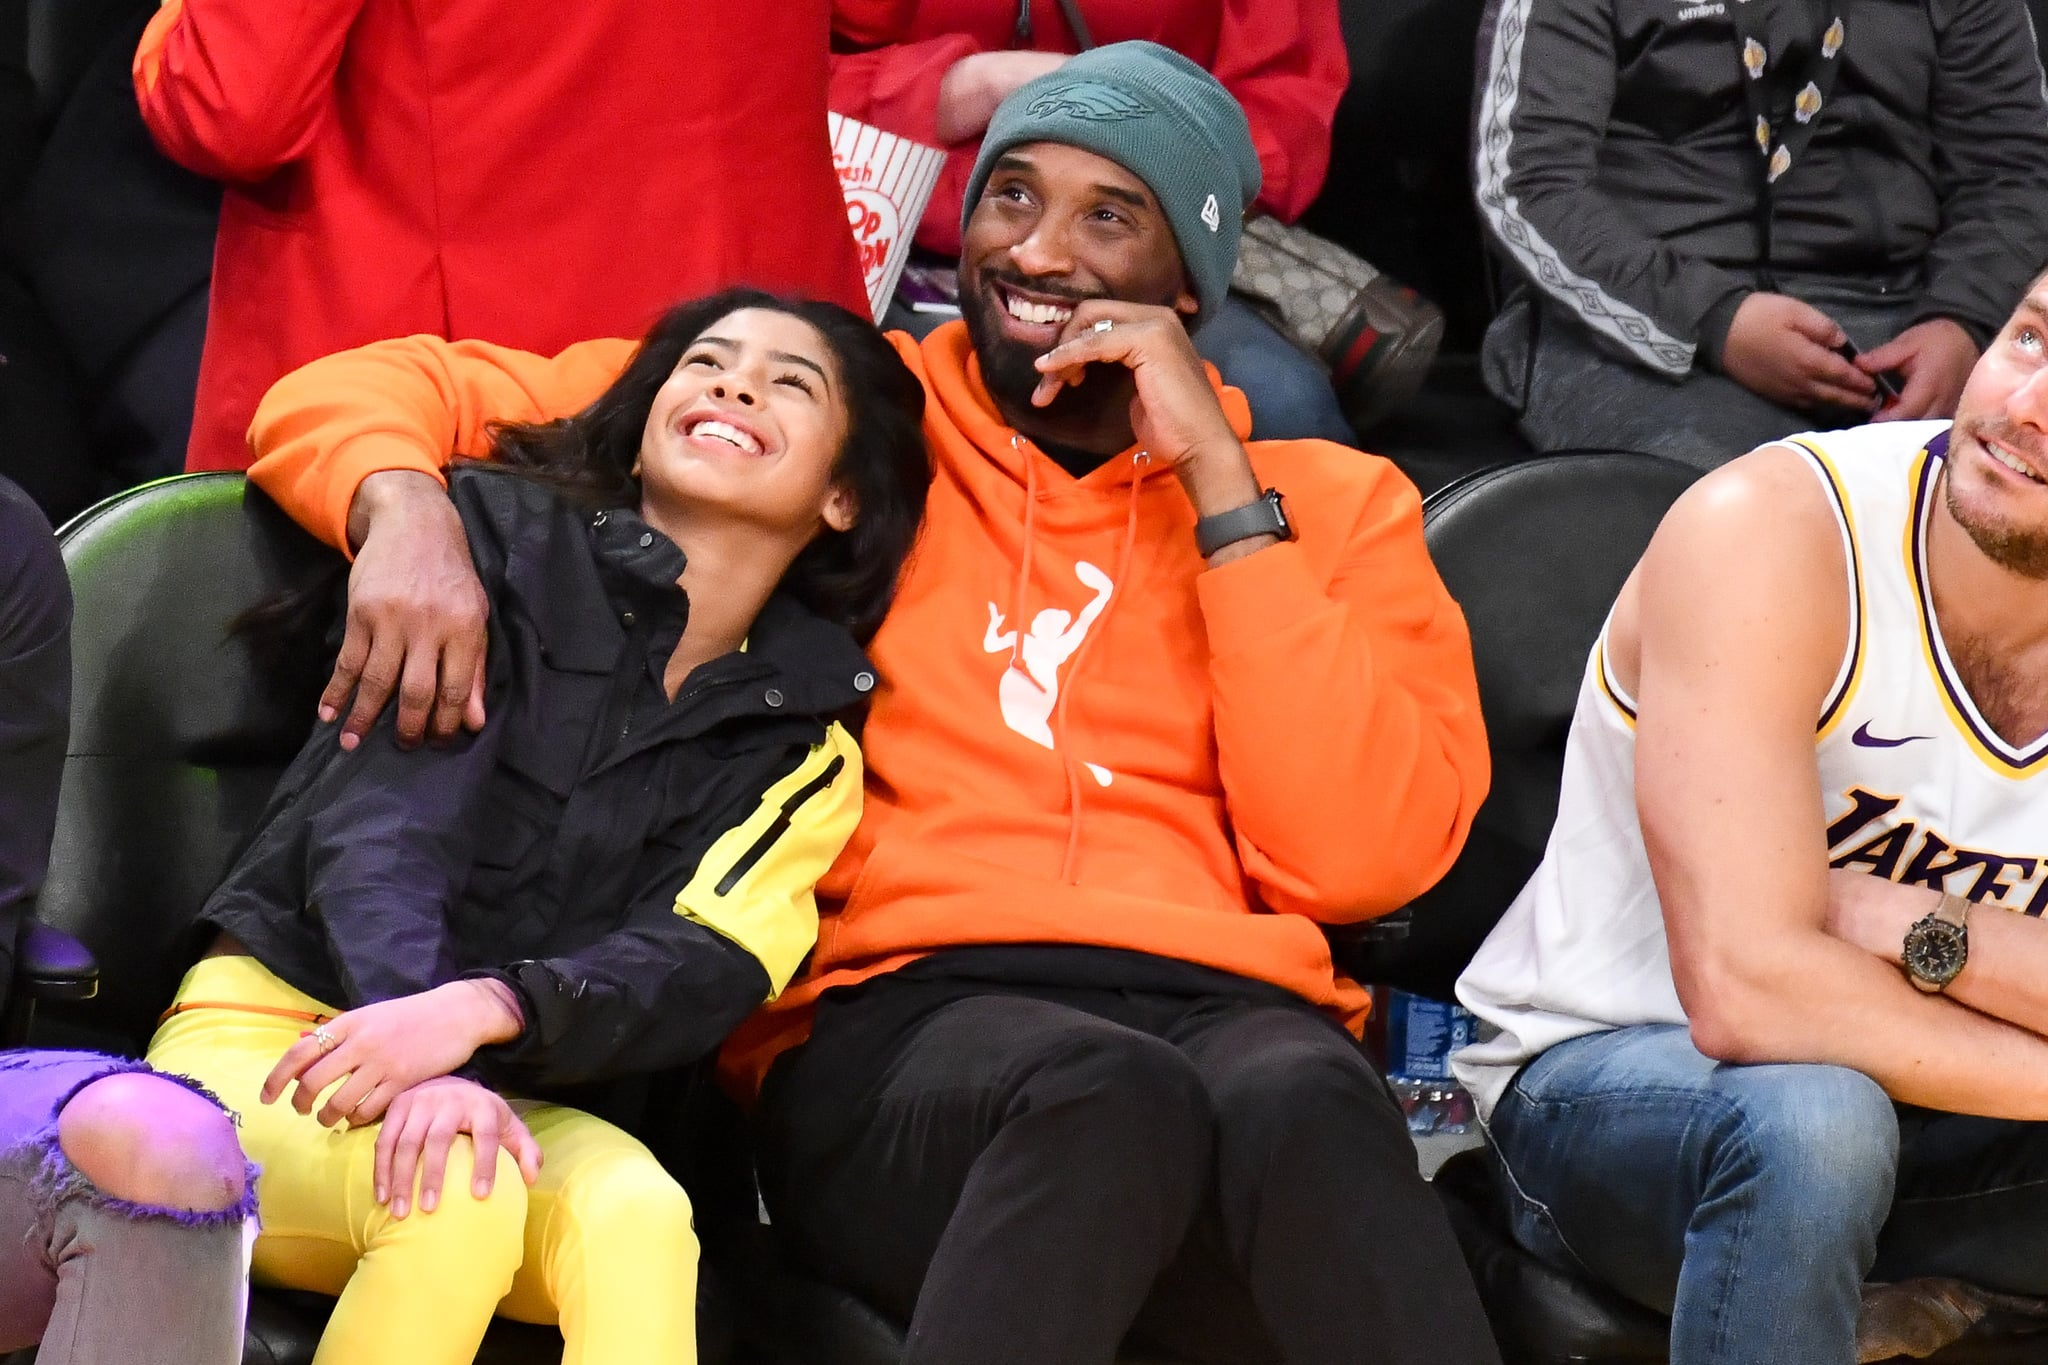 LOS ANGELES, CALIFORNIA - DECEMBER 29: Kobe Bryant and daughter Gianna Bryant attend a basketball game between the Los Angeles Lakers and the Dallas Mavericks at Staples Centre on December 29, 2019 in Los Angeles, California. (Photo by Allen Berezovsky/Getty Images)